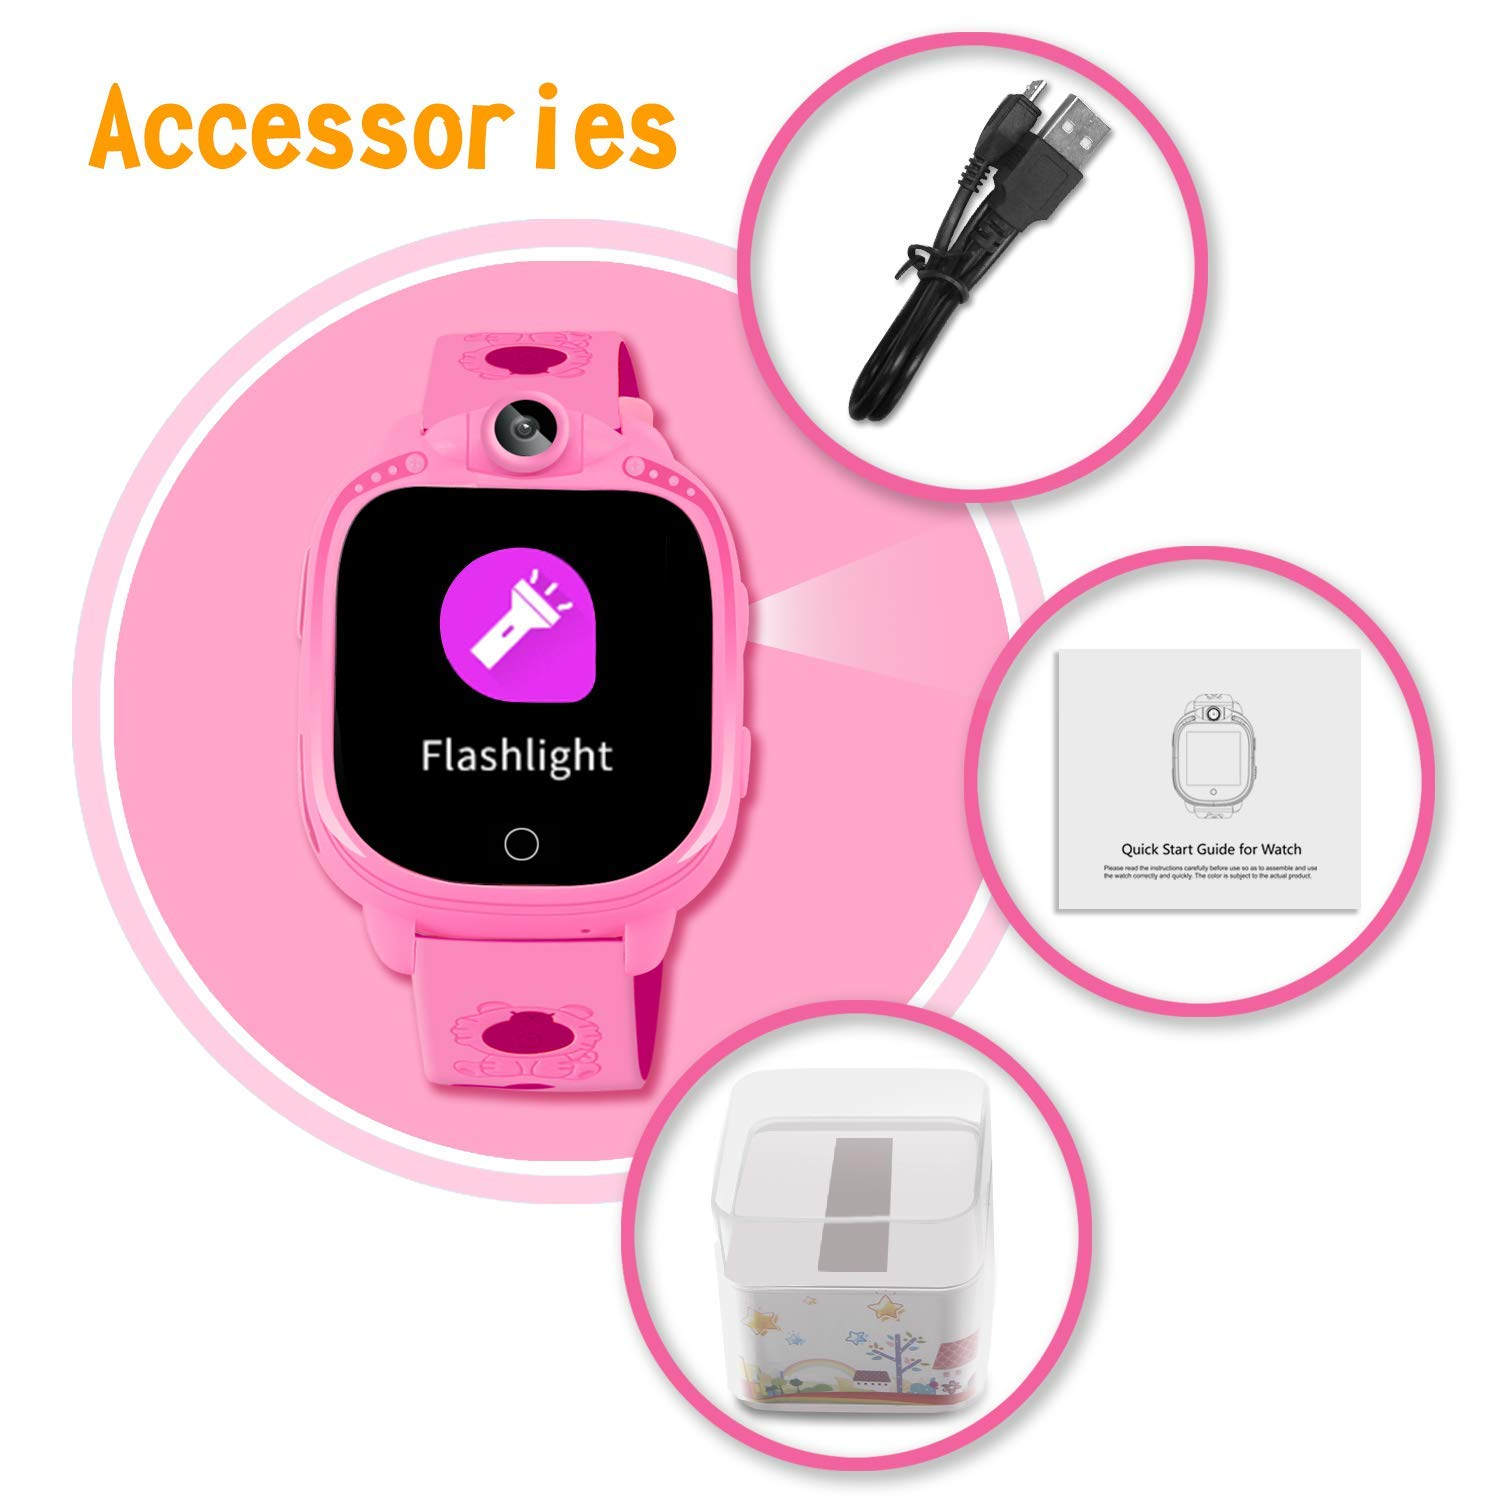 Prograce Kids Smart Watch with 90°Rotatable Camera Smartwatch Touch Screen Kids Watch Music Pedometer Flashlight FM Radio Games Digital Wrist Watch for Girls Electronic Learning Toys by Prograce (Image #8)